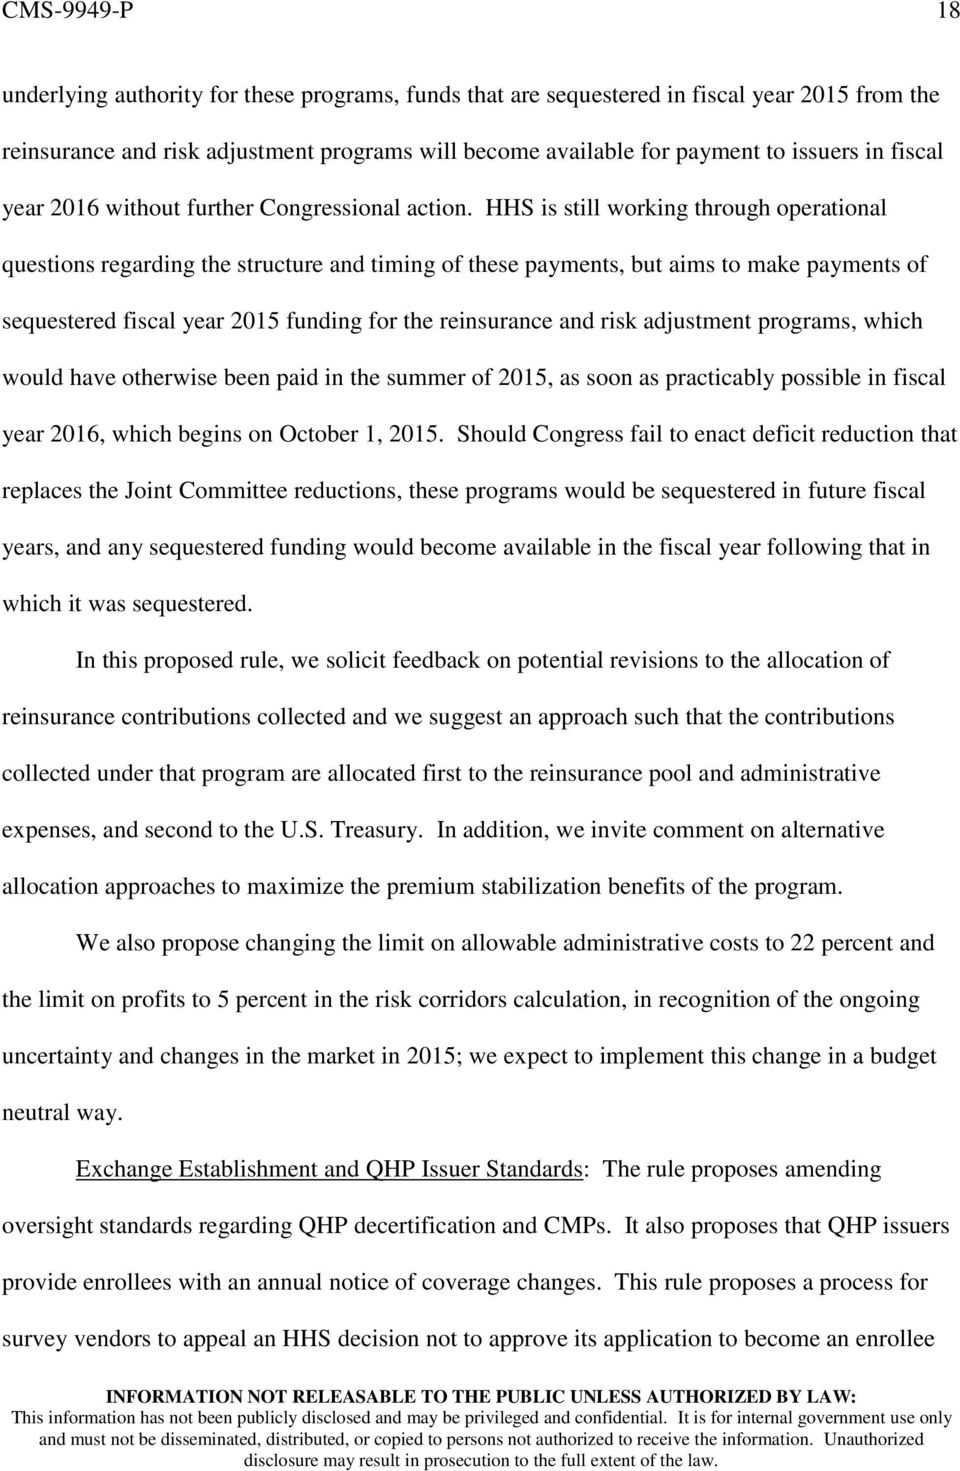 HHS is still working through operational questions regarding the structure and timing of these payments, but aims to make payments of sequestered fiscal year 2015 funding for the reinsurance and risk